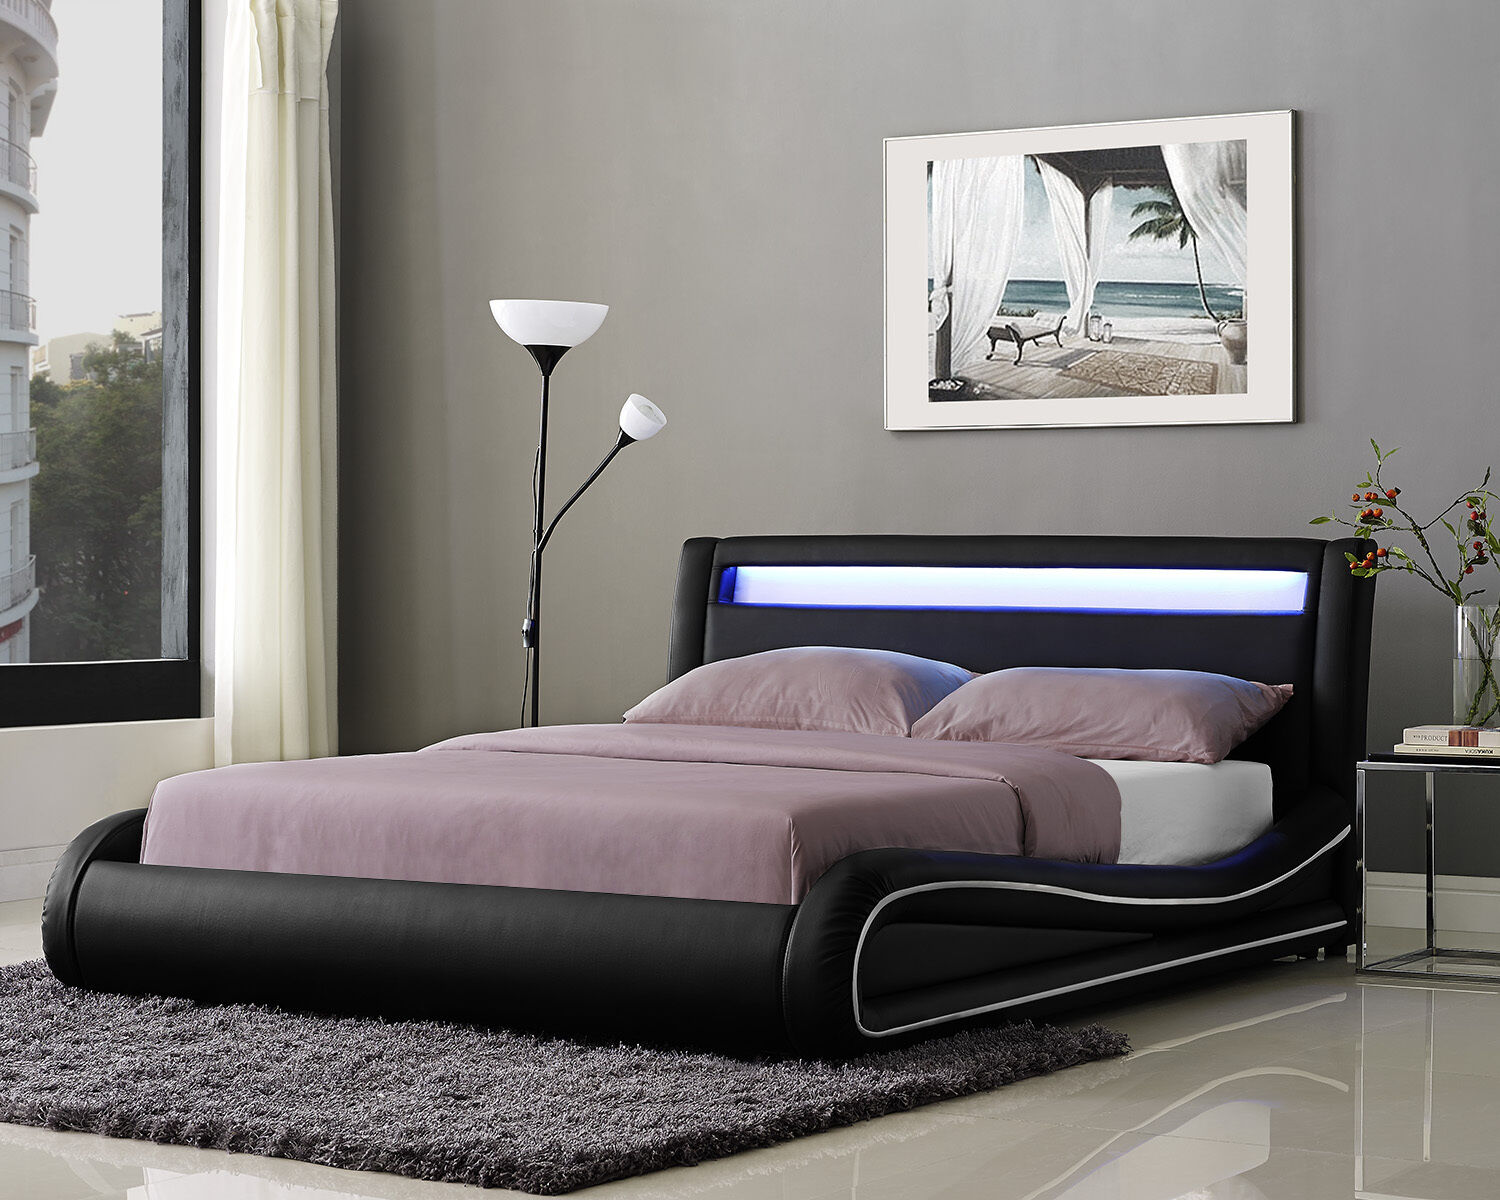 LED Double Bed Frame Or King Size Faux Leather Headboard And